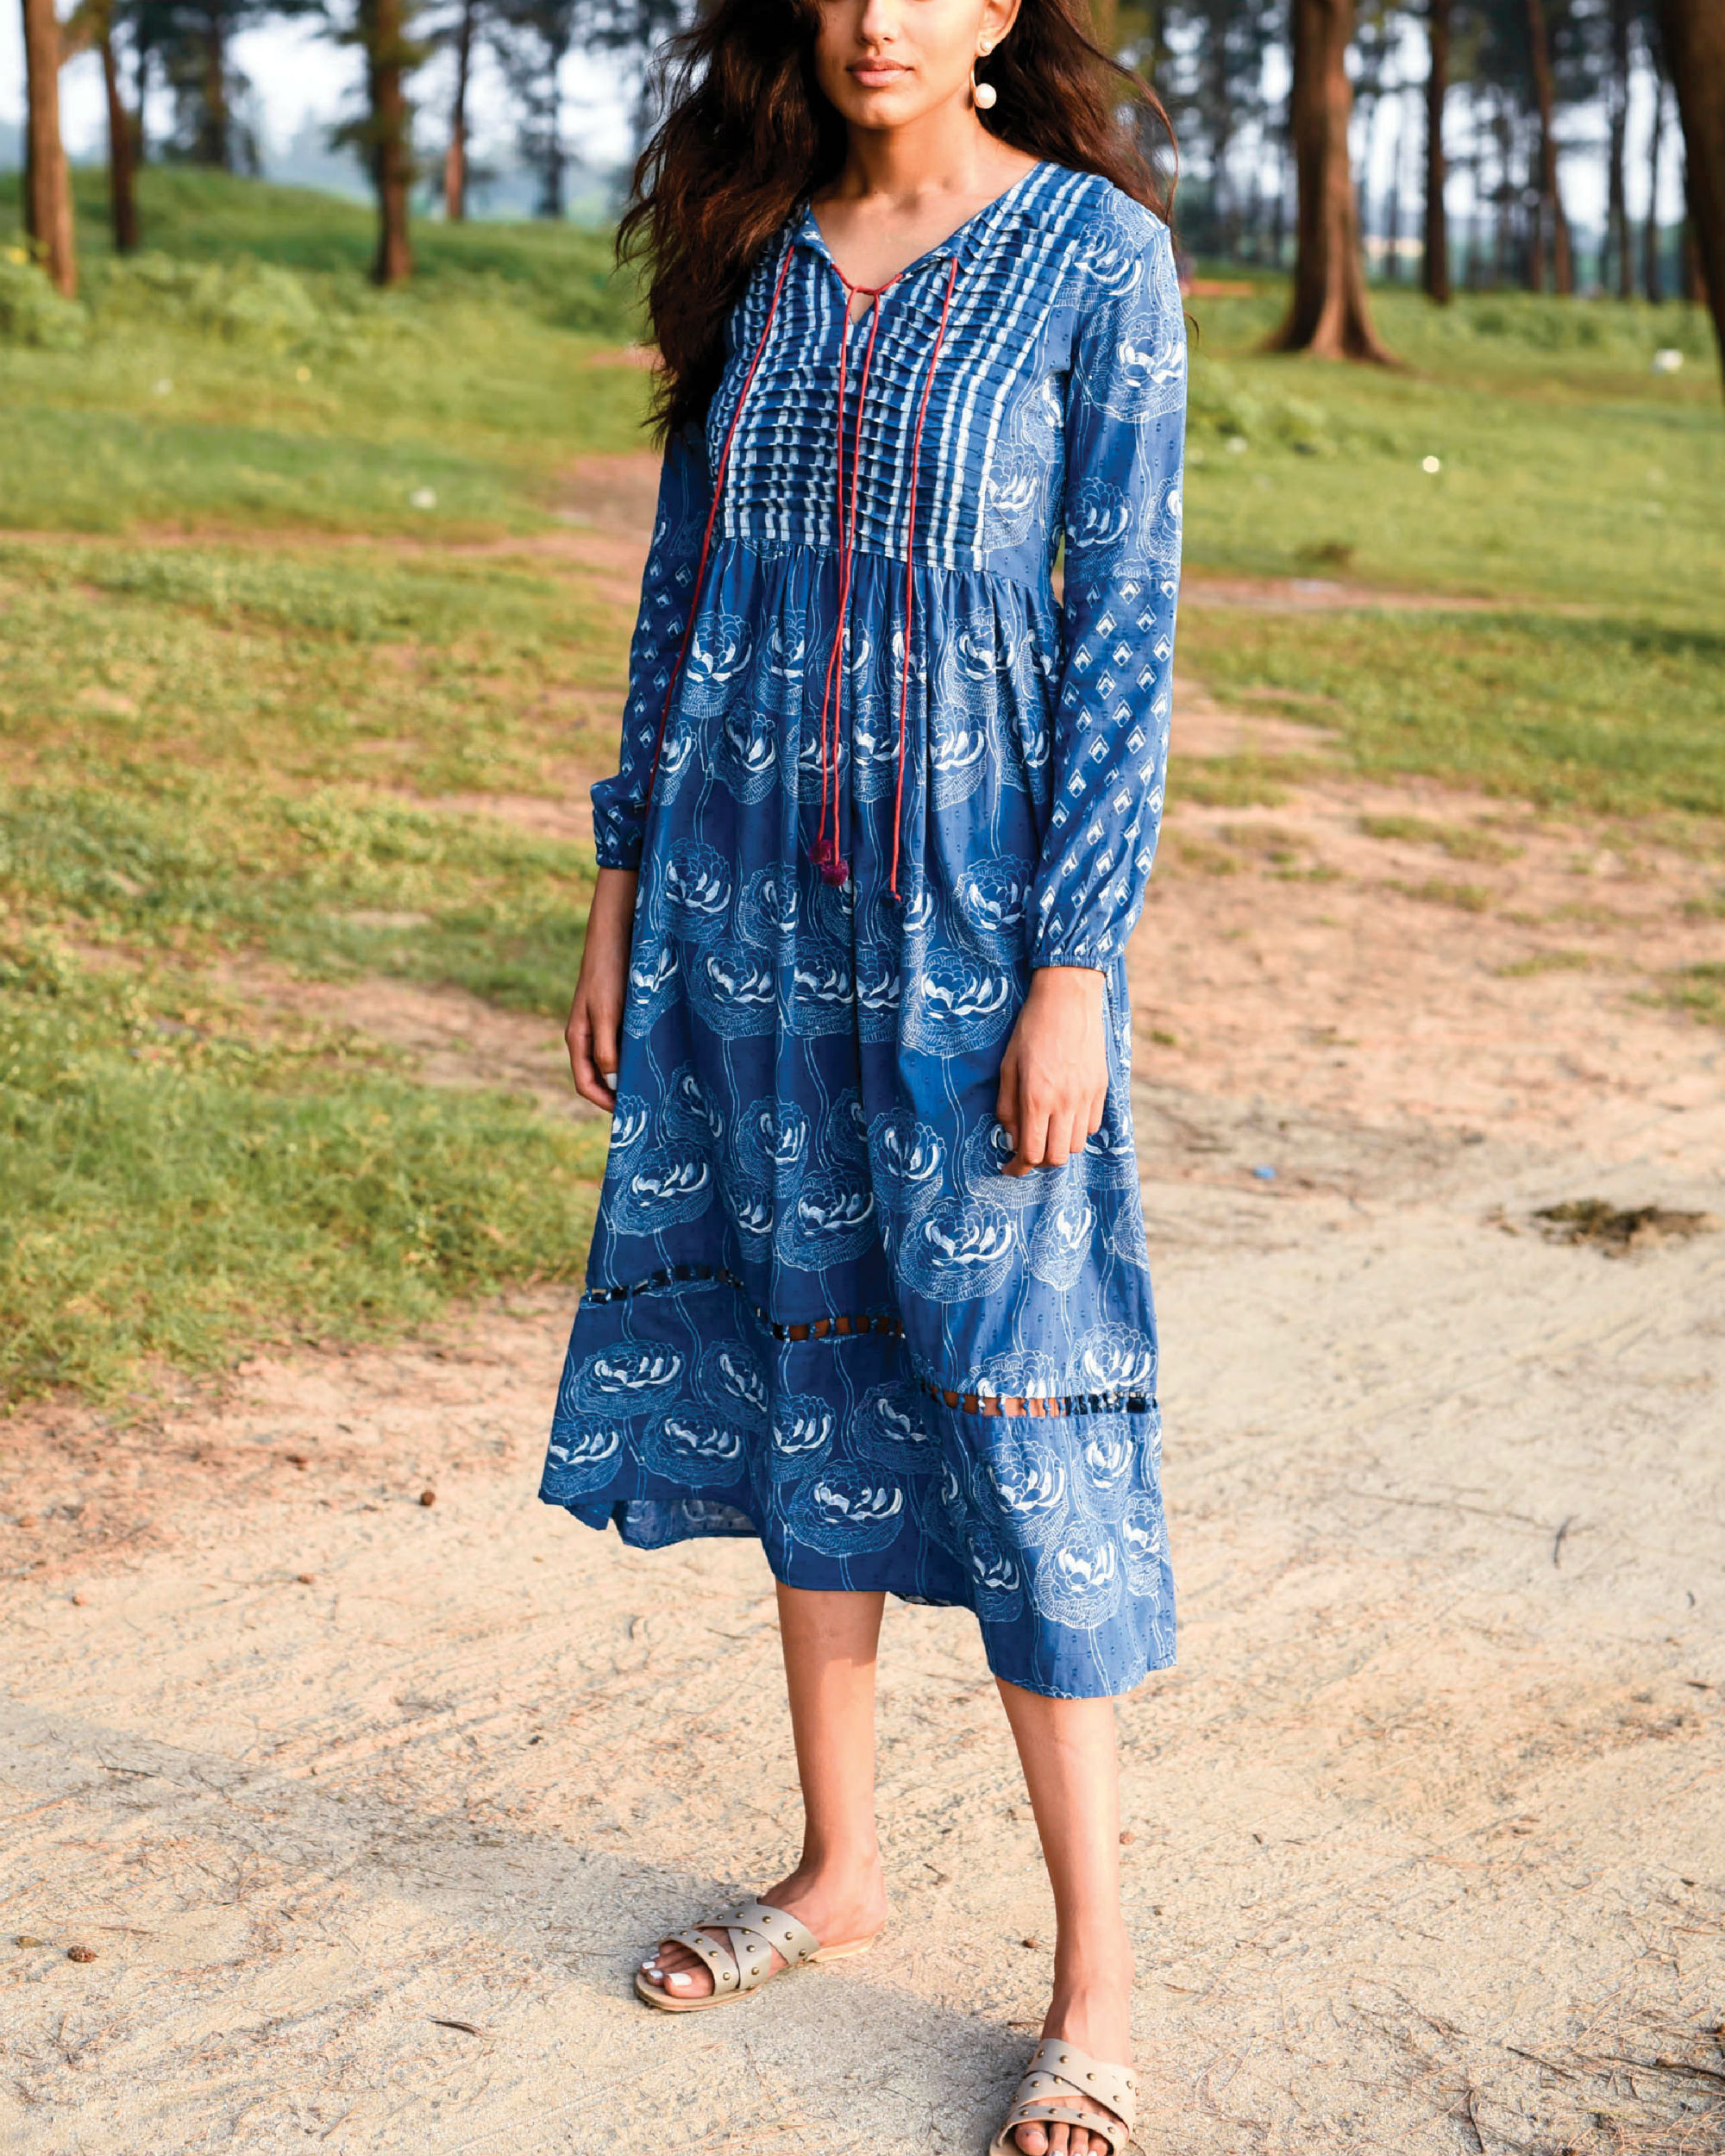 Zaffre blue peasant dress